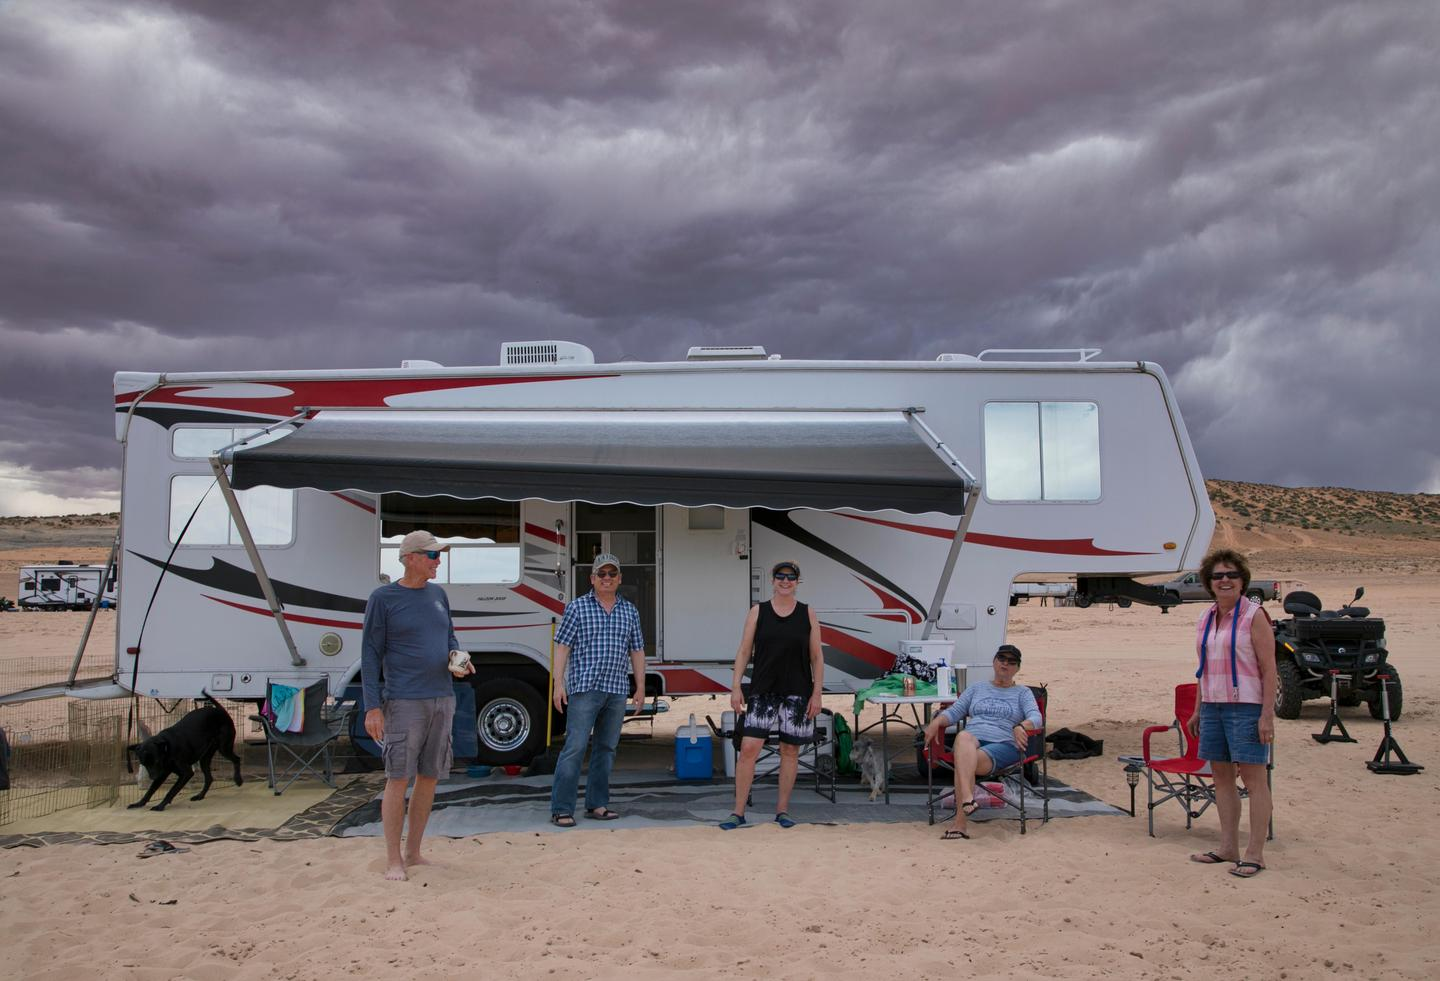 Lone Rock Beach Primitive Camping - Recreational VehicleThe whole family can enjoy the beach camping at Lone Rock.